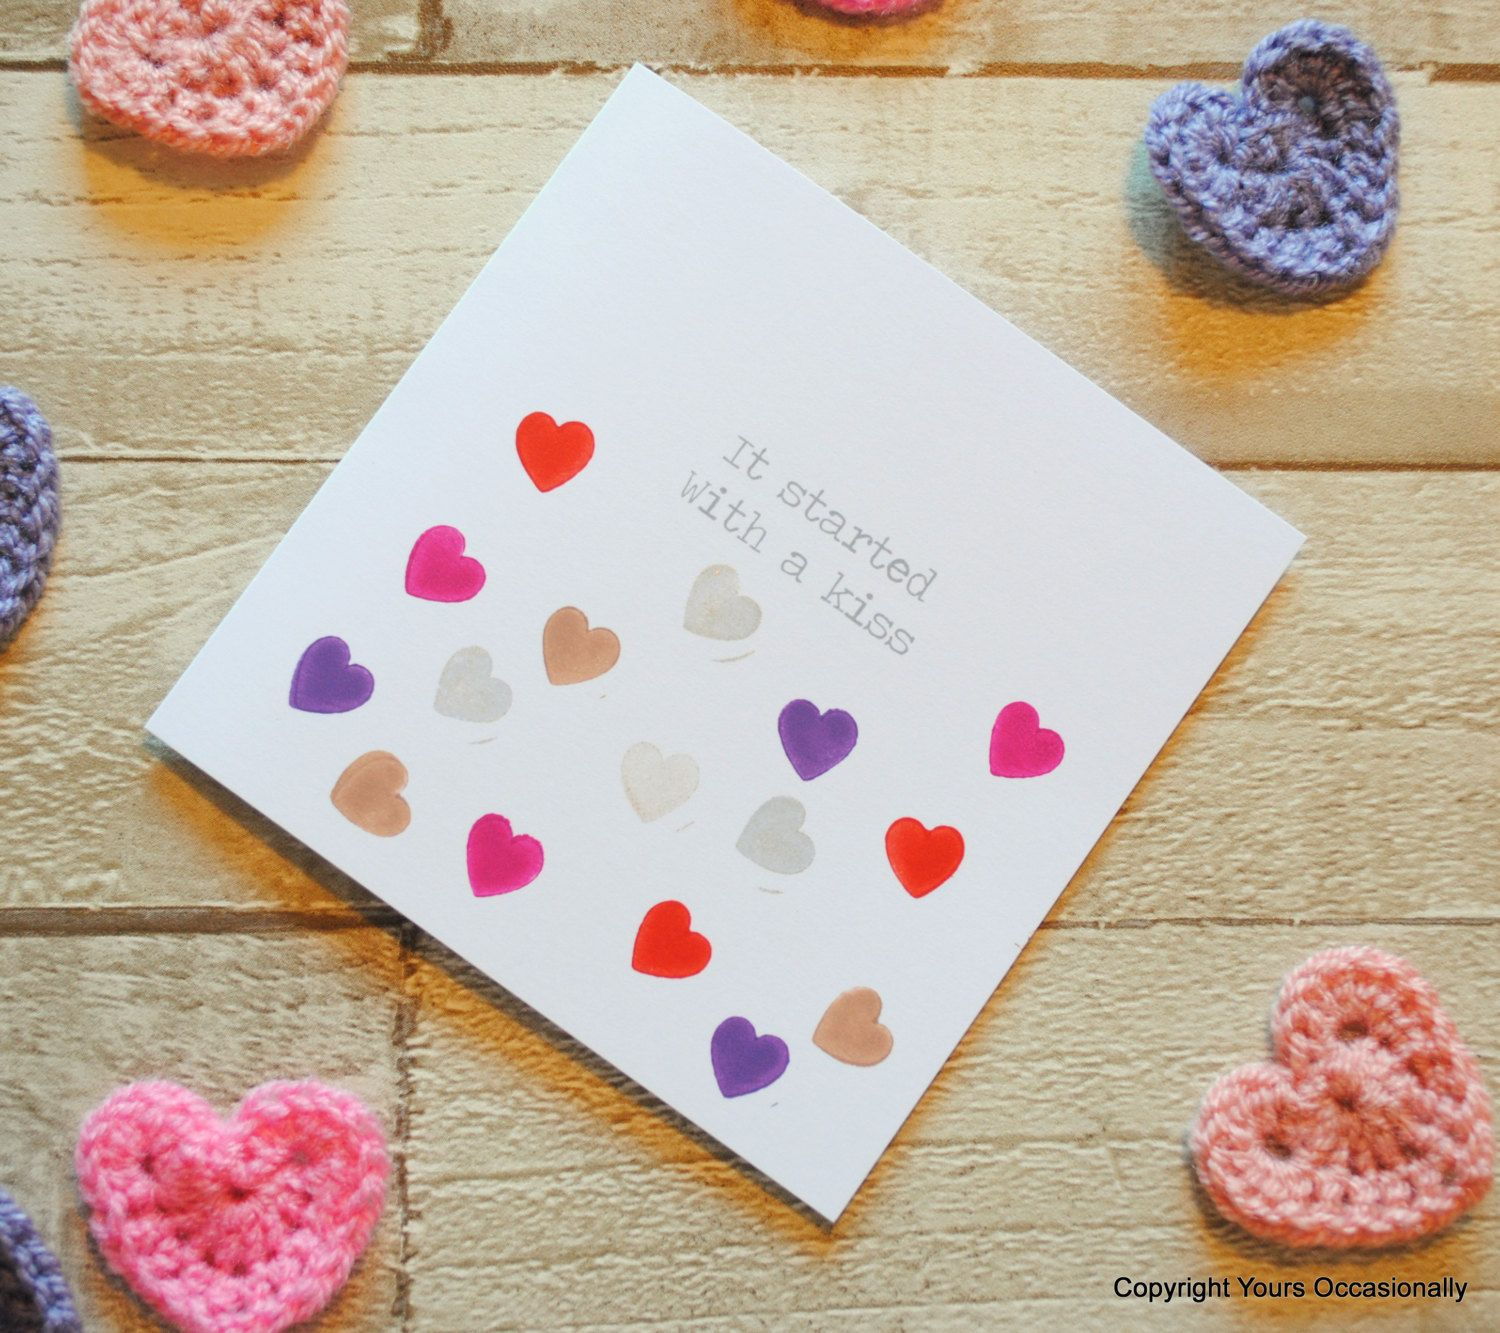 it started with a kiss valentine's day cardlove card